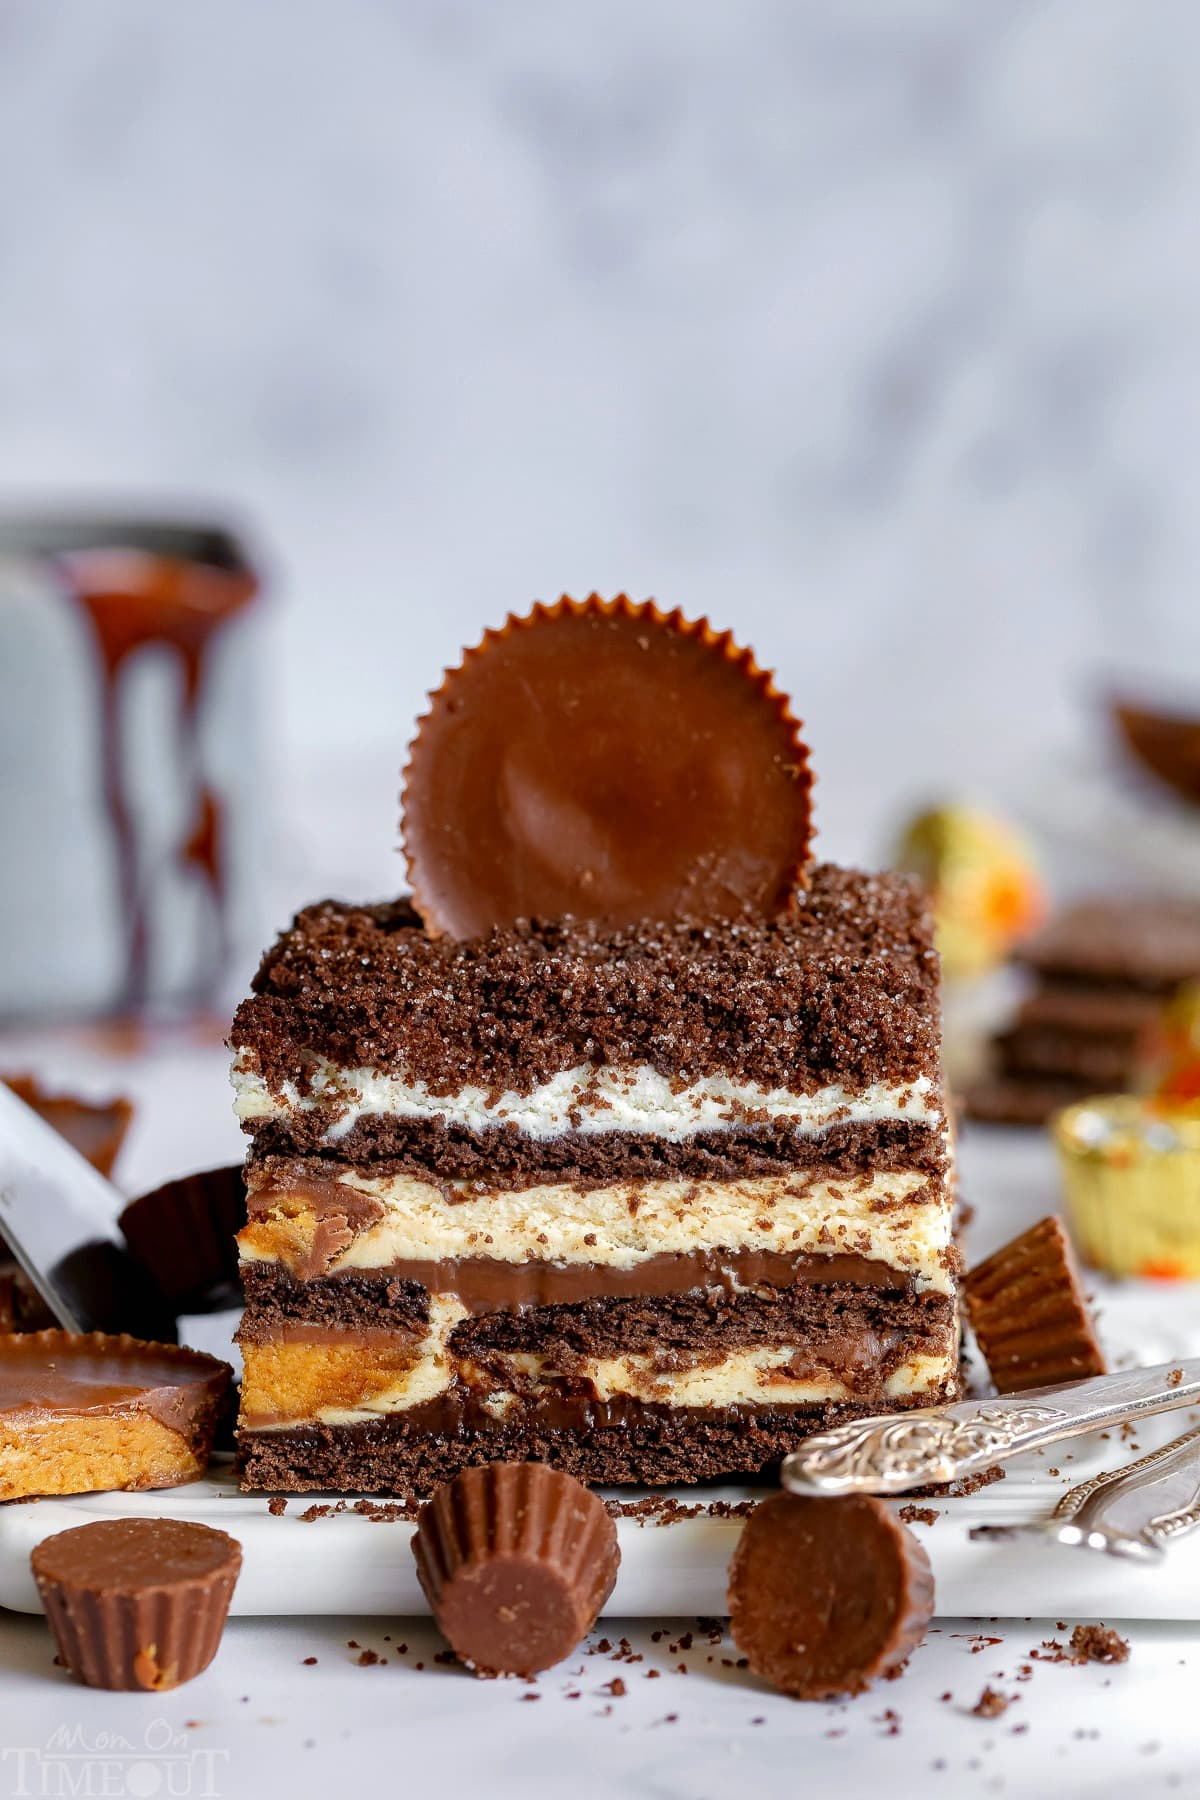 """icebox-cake-peanut-butter-reeses-chocolate-graham-crackers-no-text """"ancho ="""" 738 """"altura ="""" 1108"""